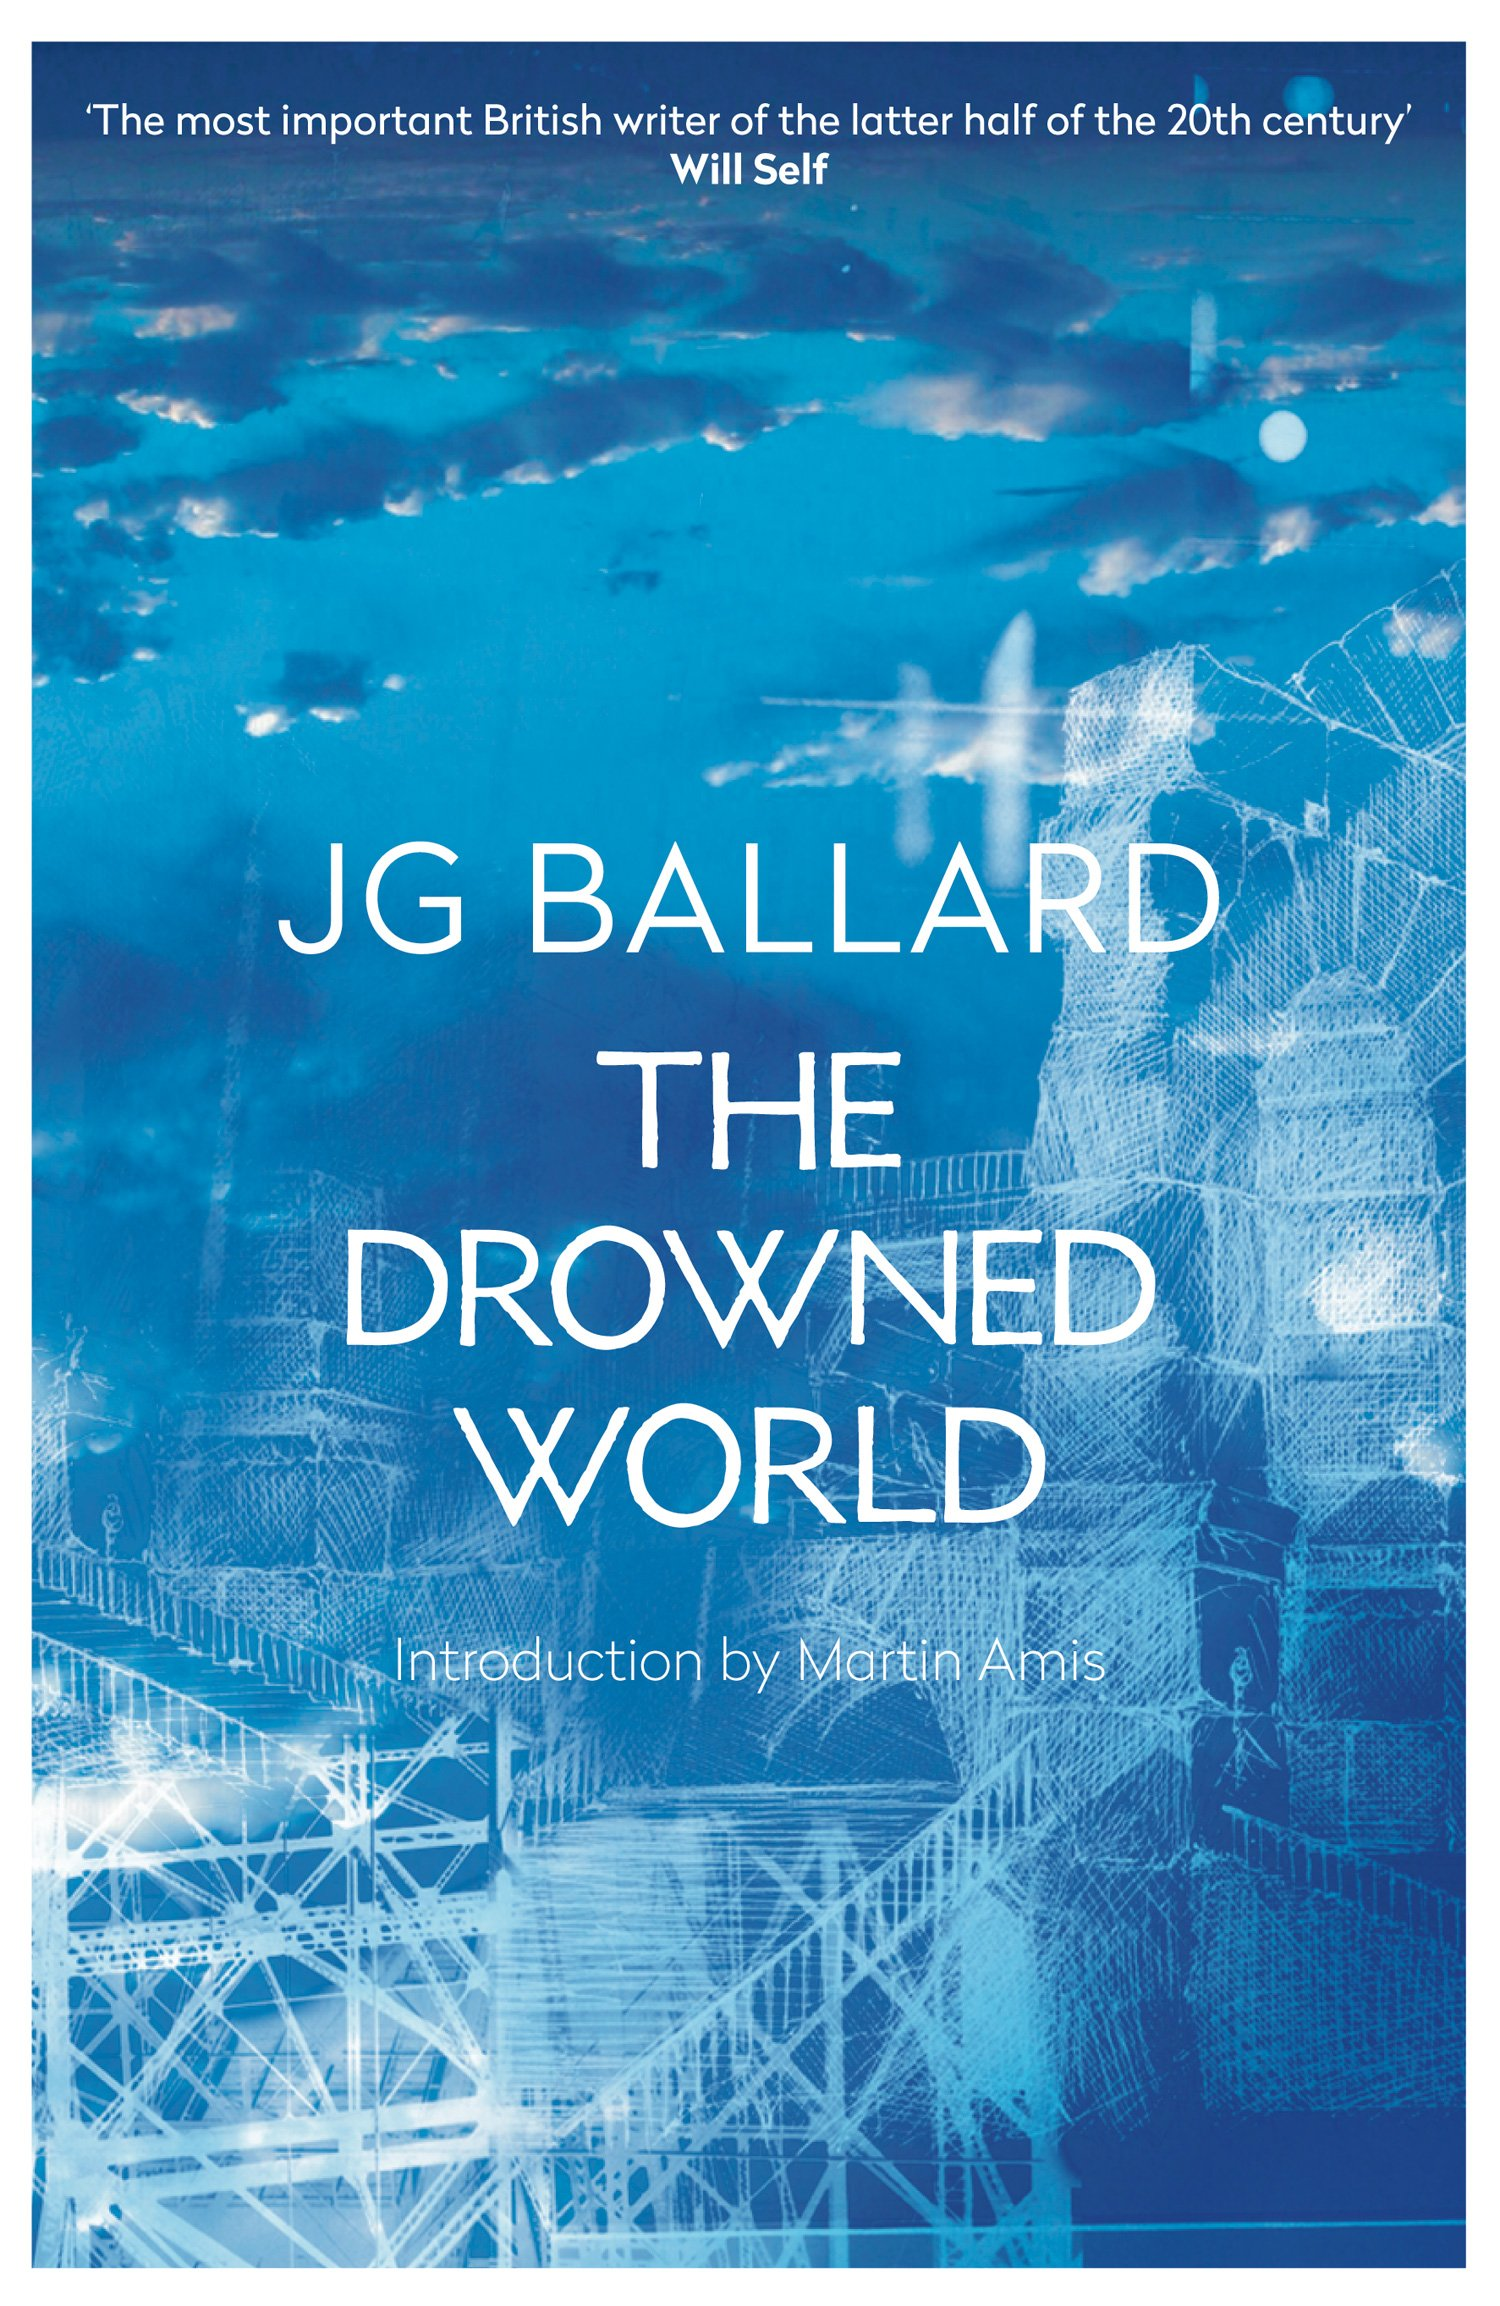 Buy THE DROWNED WORLD by J G Ballard